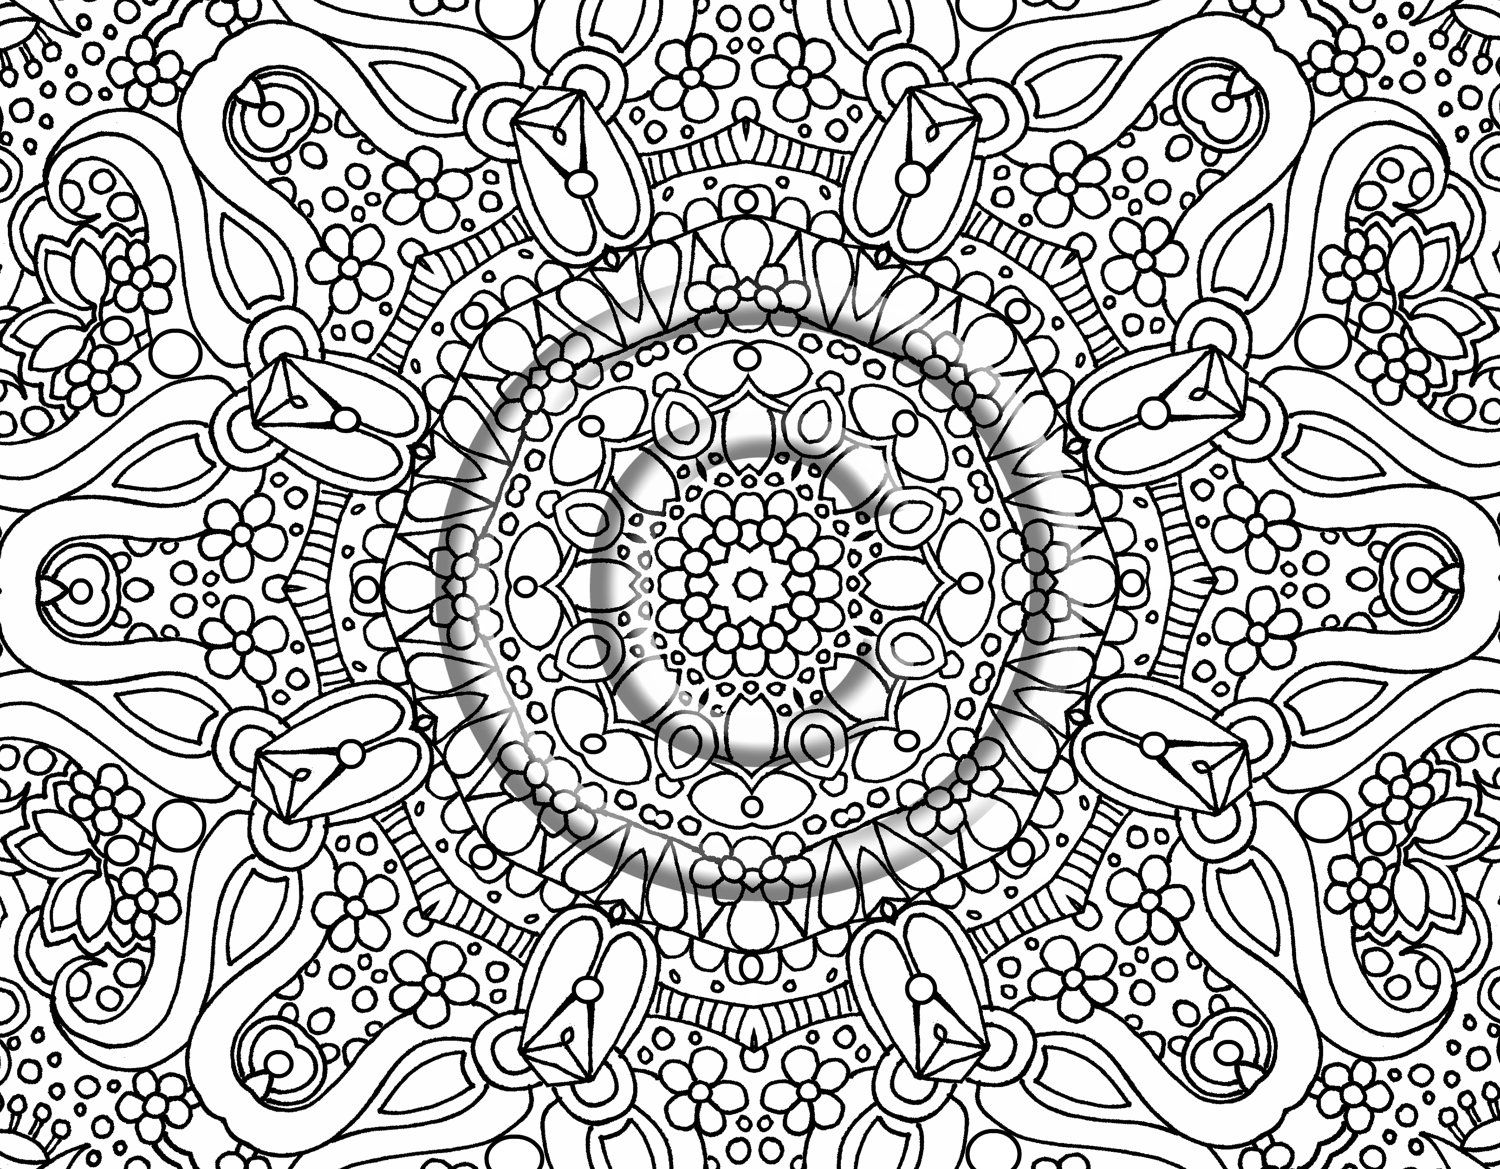 Free online printable adult coloring pages - Difficult Coloring Pages For Adults